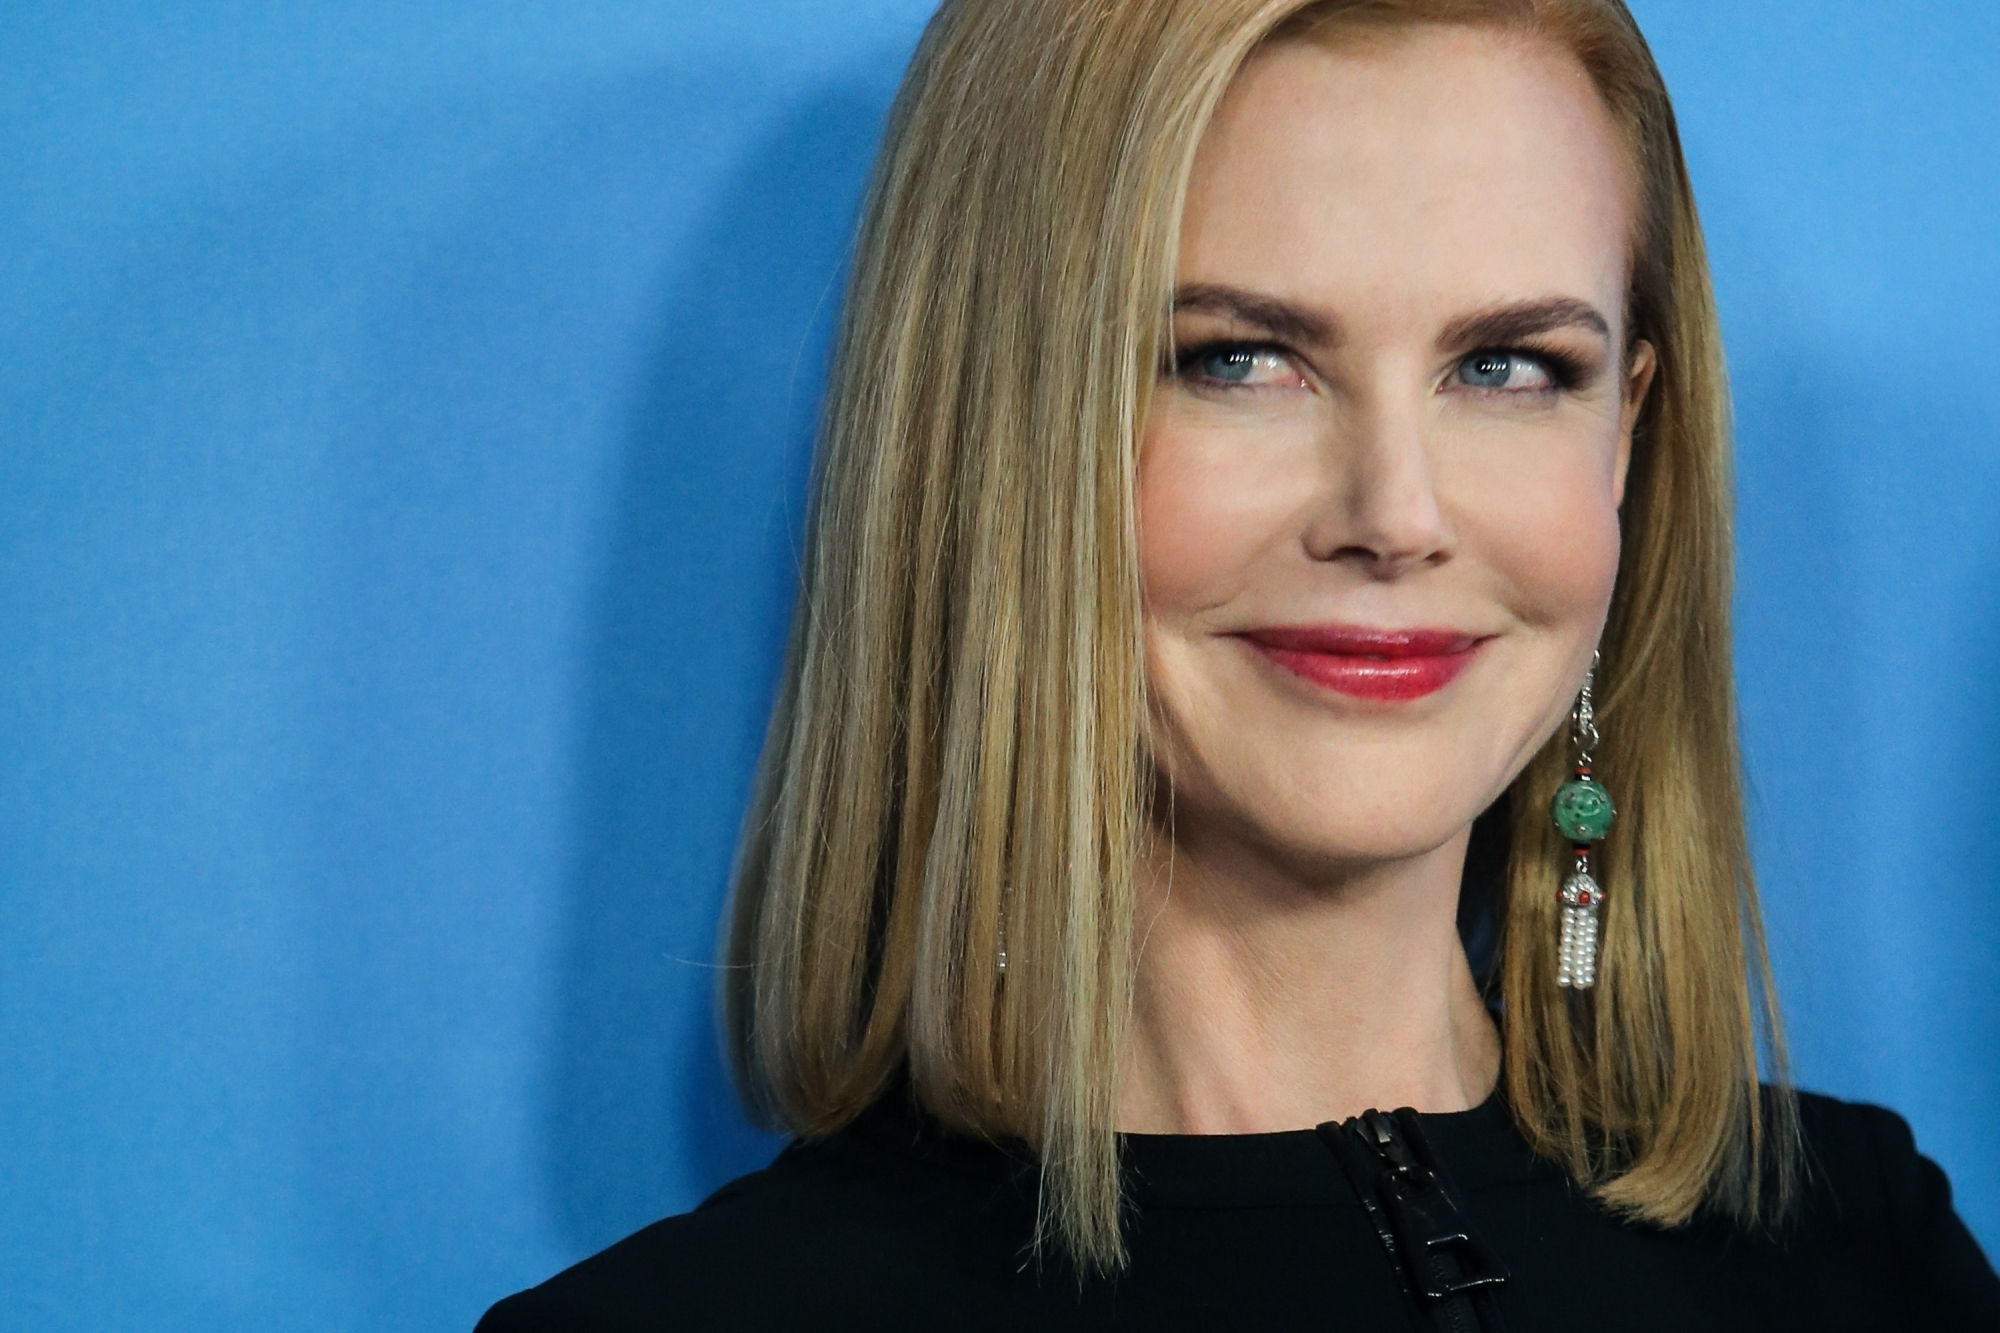 Nicole Kidman's daughter honours her with clothing line